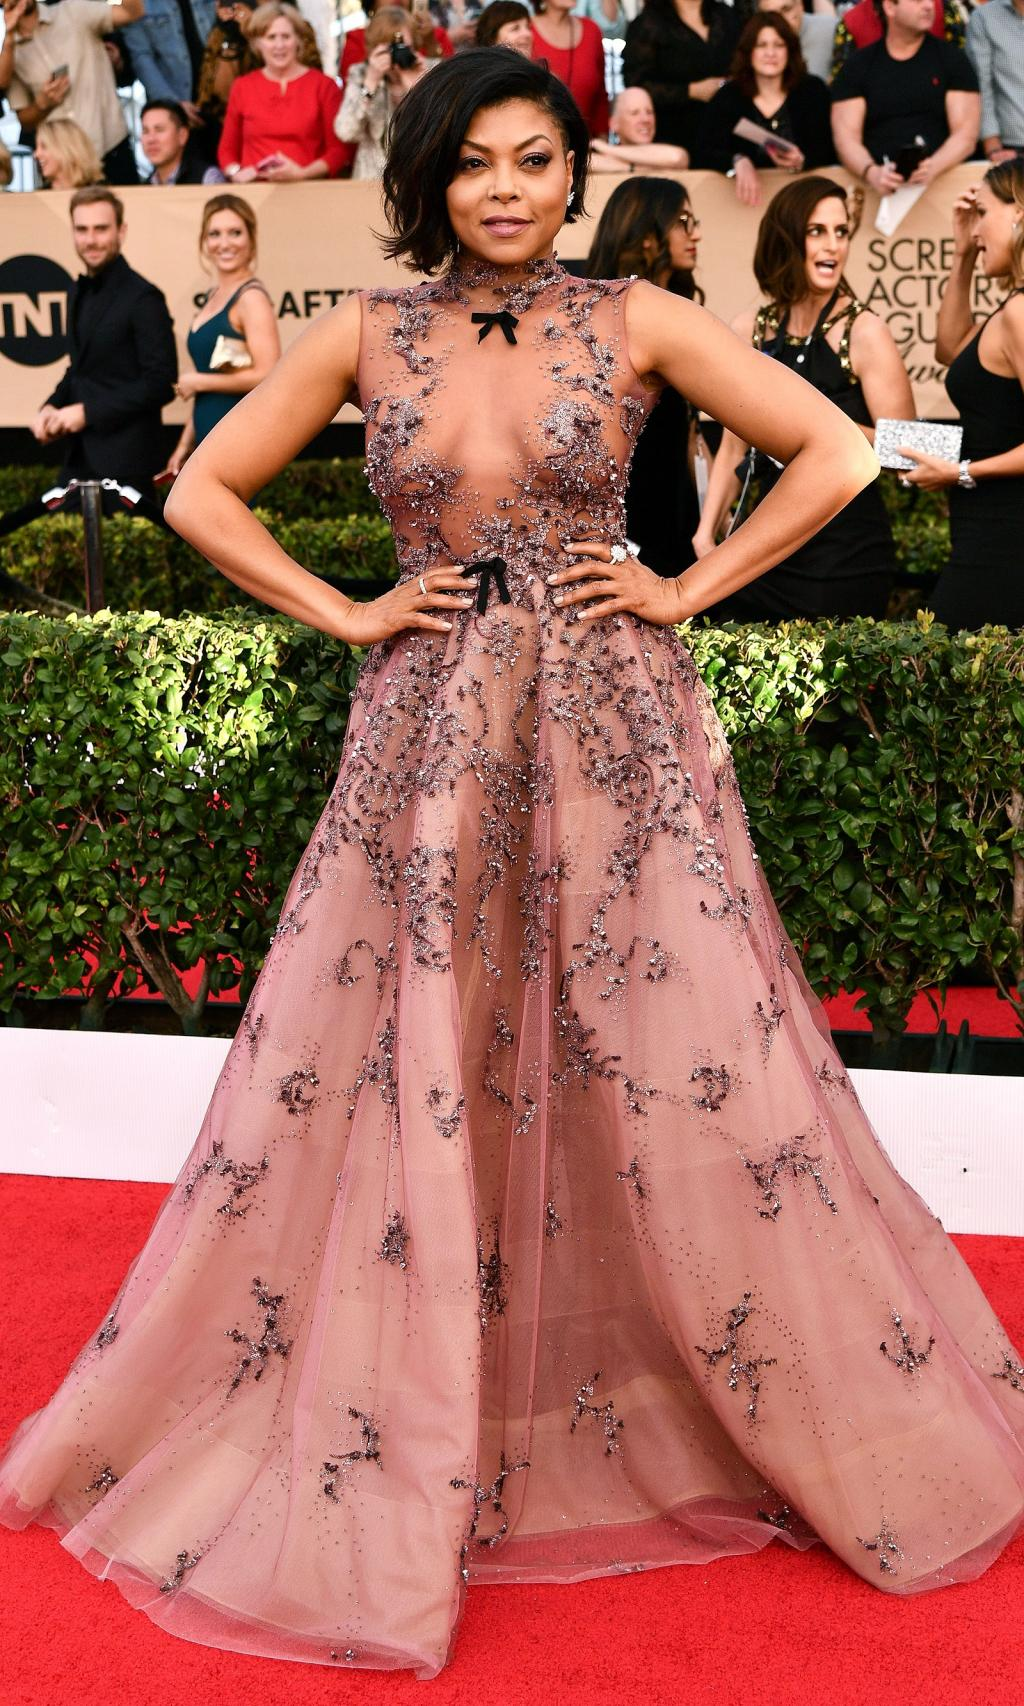 Taraji P. Henson Shows How to Fall with Grace at SAG Awards: 'I'm a Bit of a Klutz … That's What Makes Me Human'